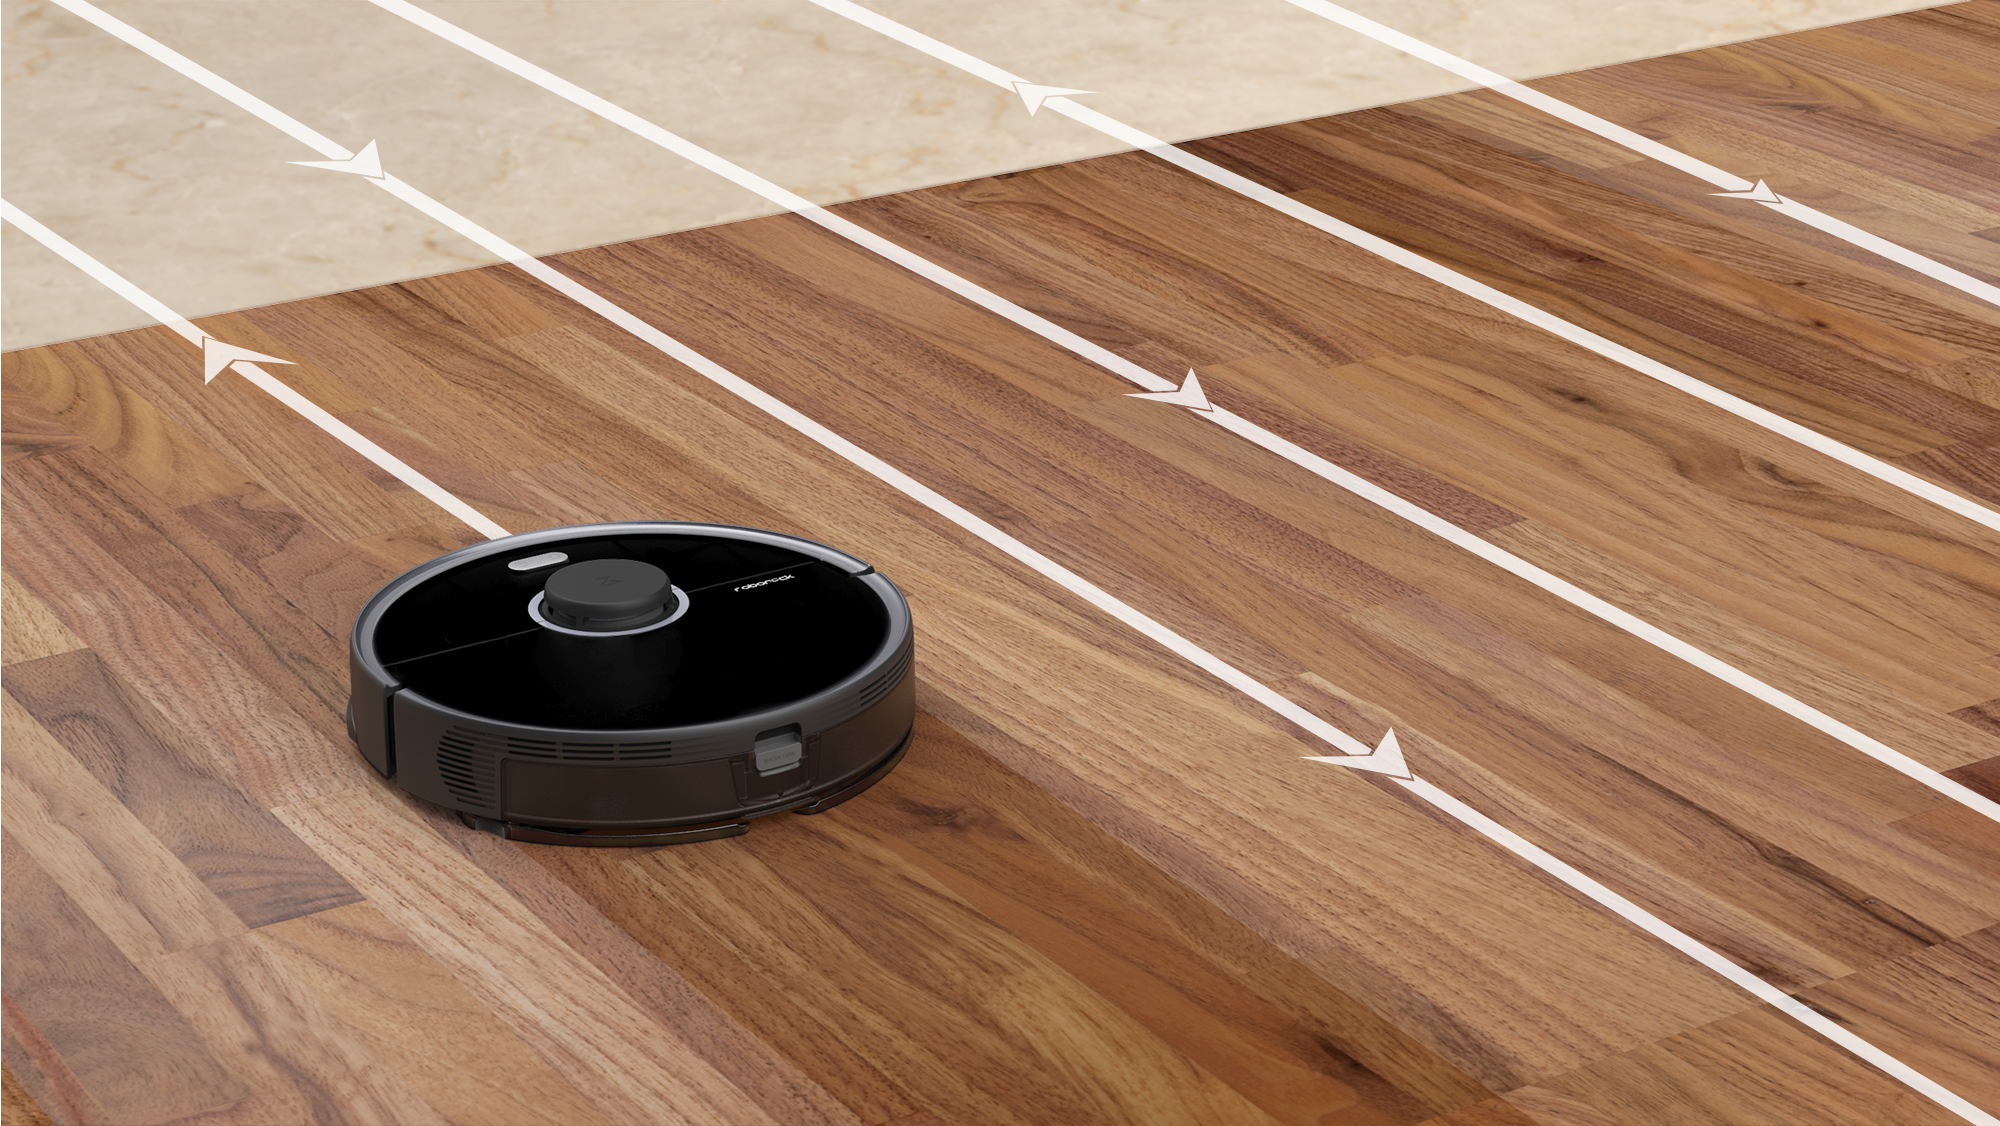 Roborock S5 Max vacuum robot: The best mopping function so far?